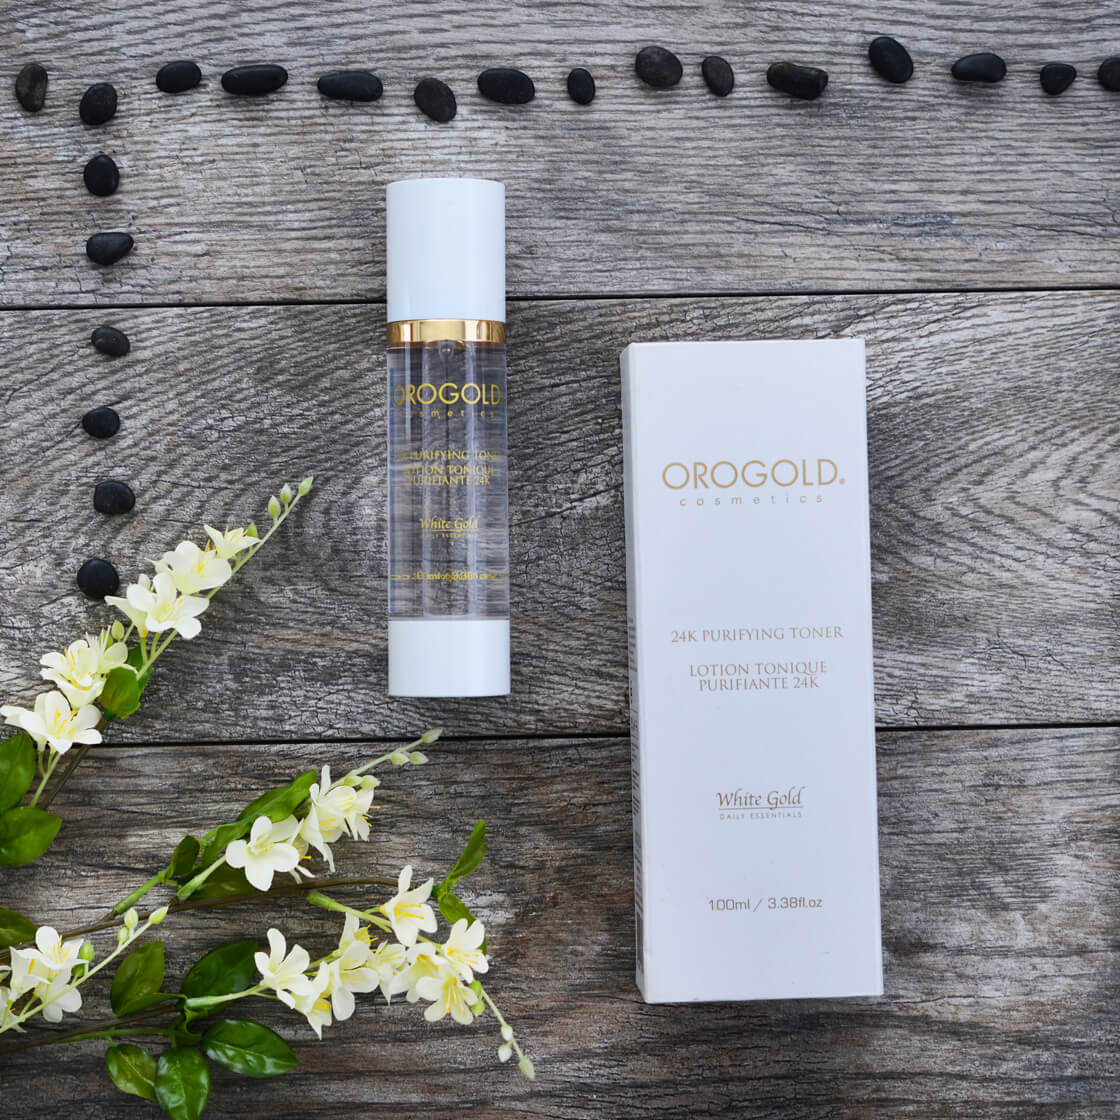 Toner with cosmetic gold - gold-infused skincare